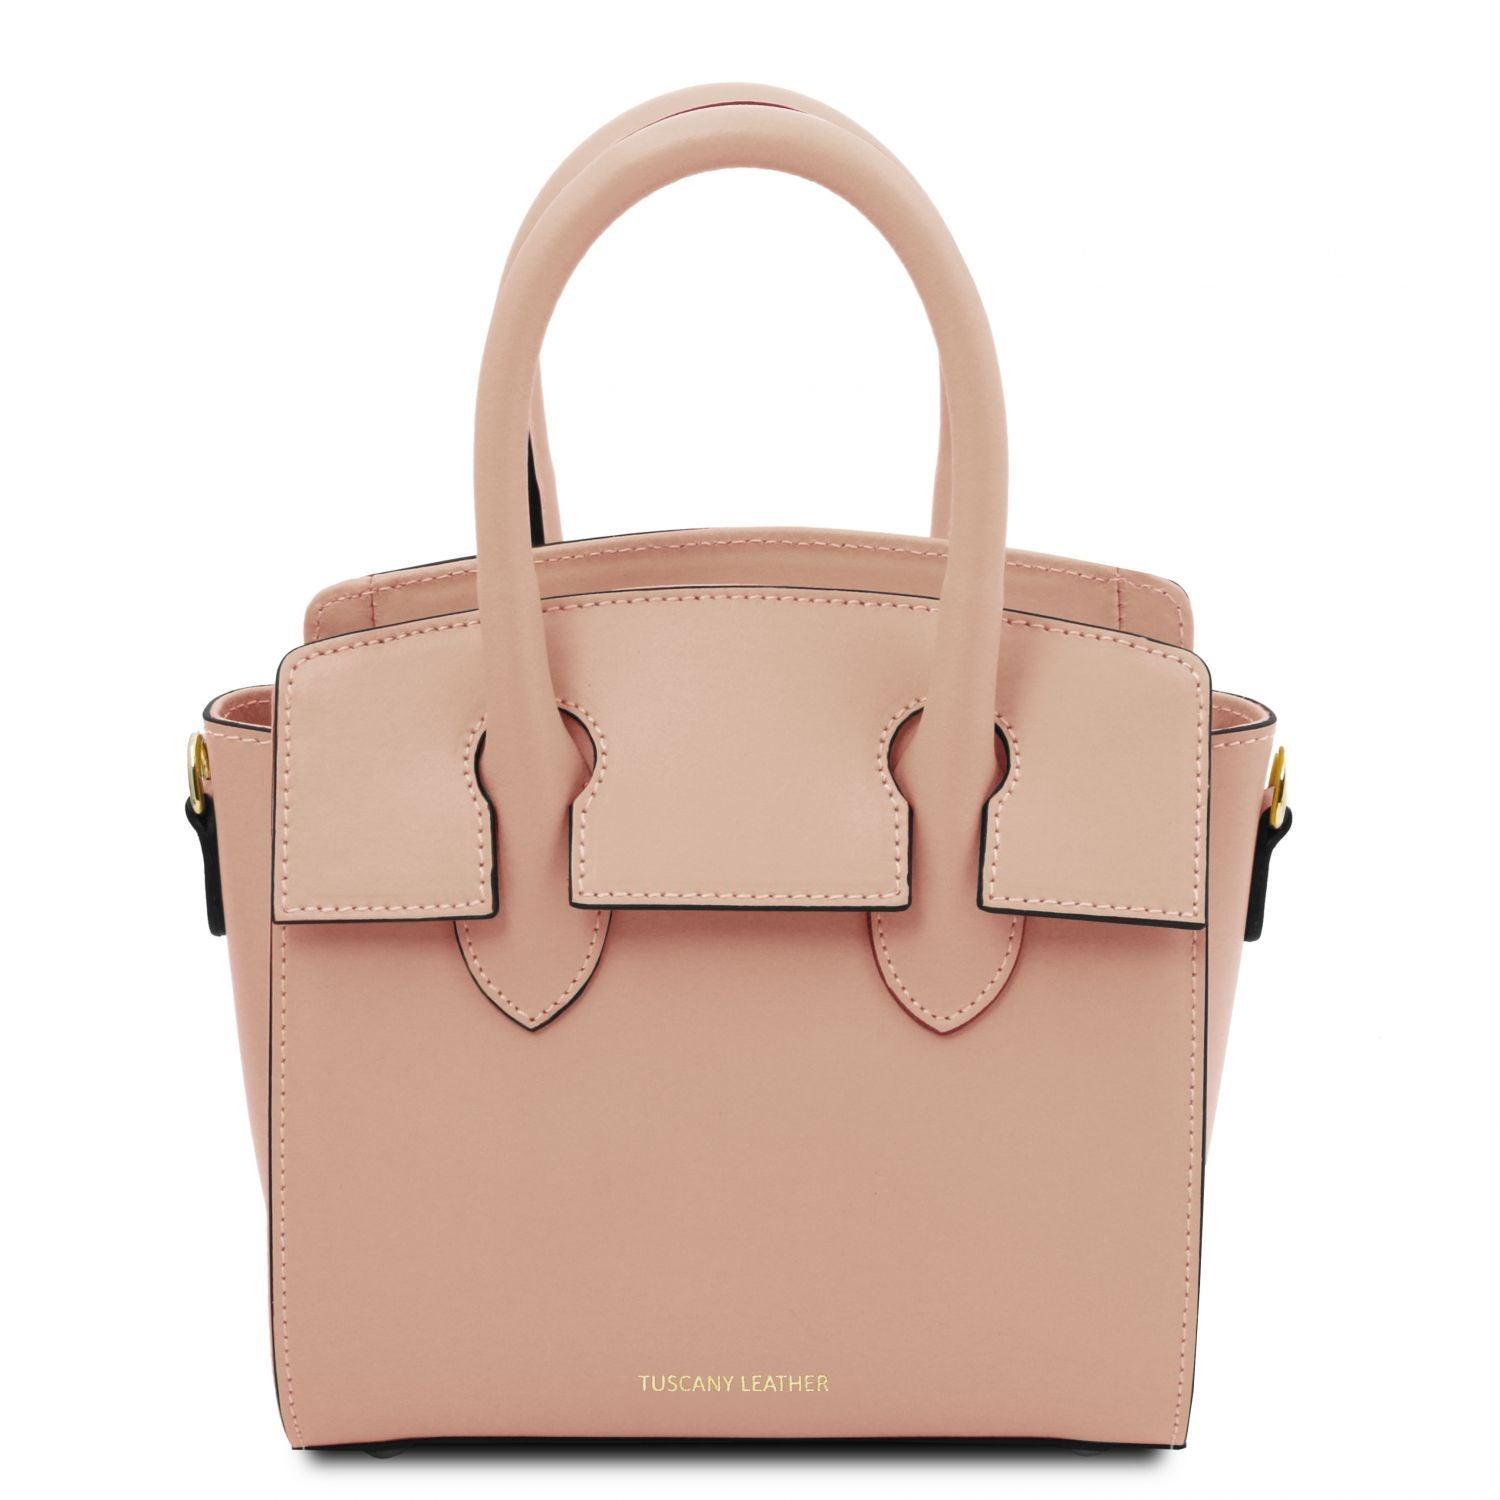 Brigid - Leather handbag - small size (TL141942) - Leather handbags | DILUSSOBAGS